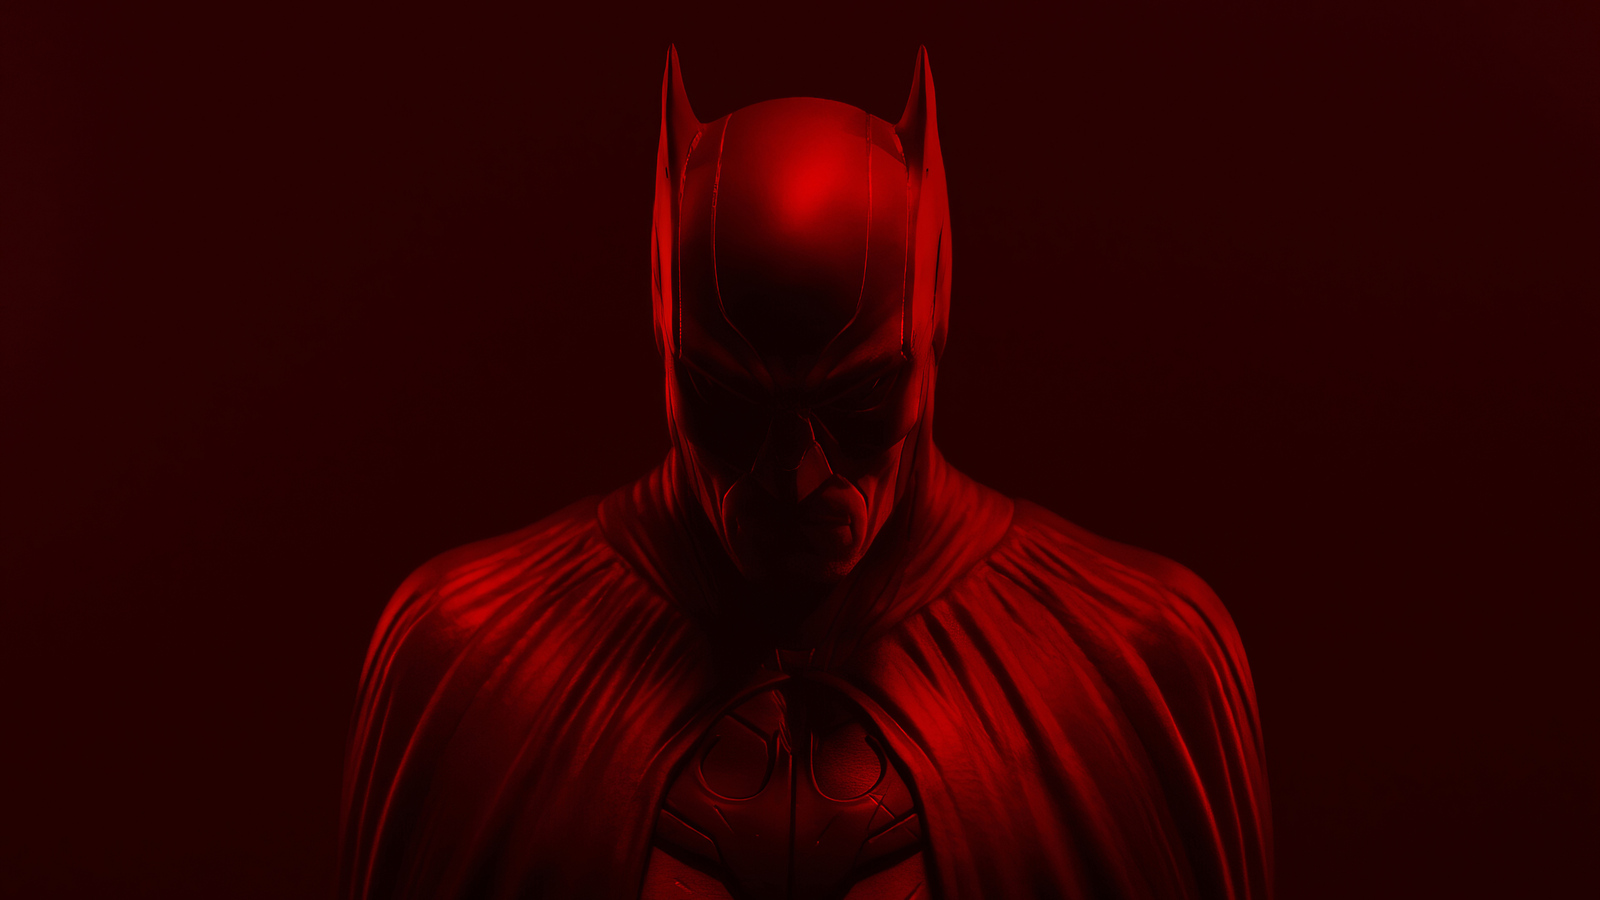 batman-red-background-pm.jpg